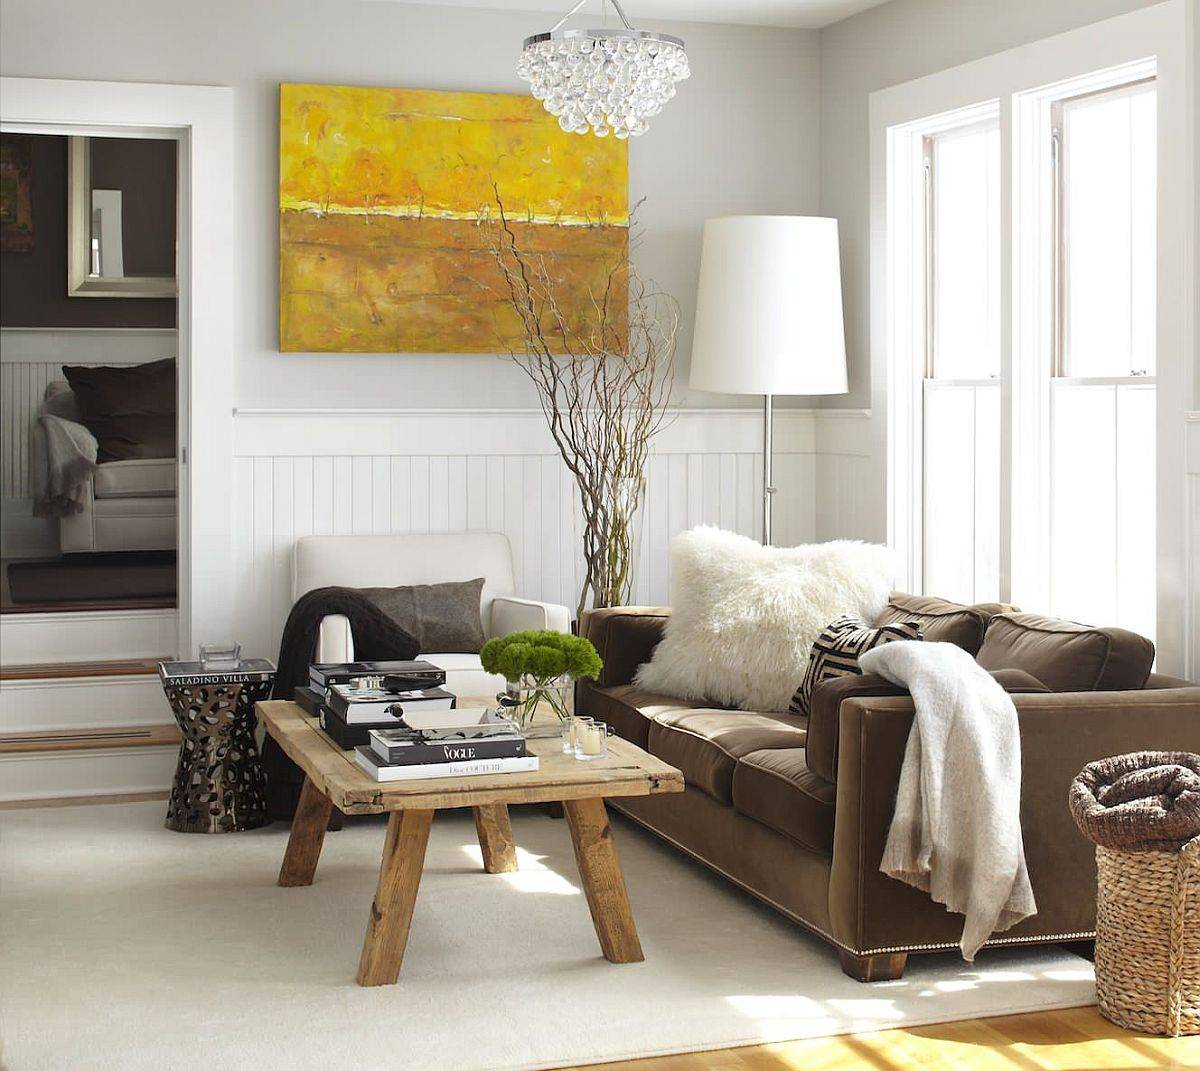 Small-rustic-touches-can-transform-the-modern-living-room-into-a-more-winter-ready-space-that-is-warm-and-elegant-75154